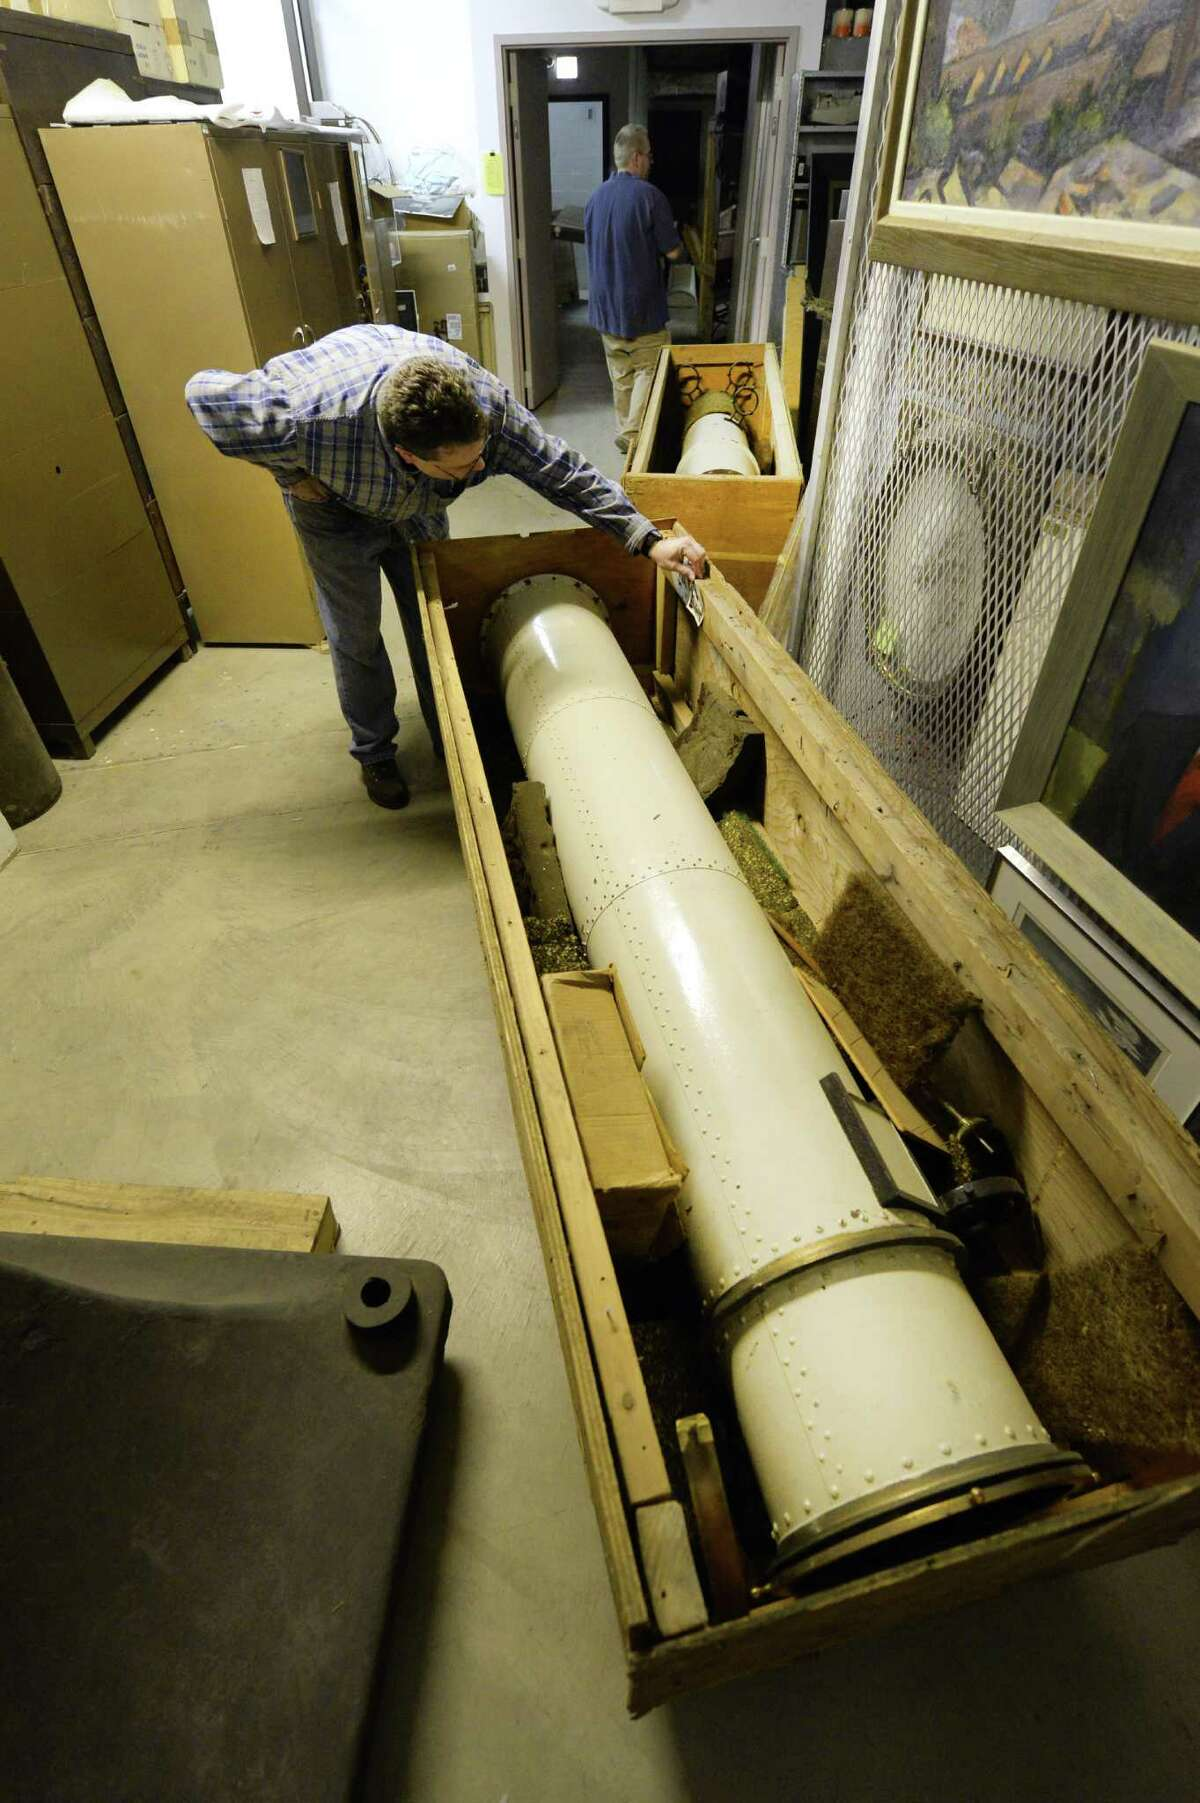 Archivist Josh Hauck looks over pieces of the original Dudley Observatory telescope which moved in to it's new home at the miSci(former Schenectady Museum) Wednesday afternoon Nov. 6, 2013 in Schenectady, N.Y. (Skip Dickstein / Times Union)